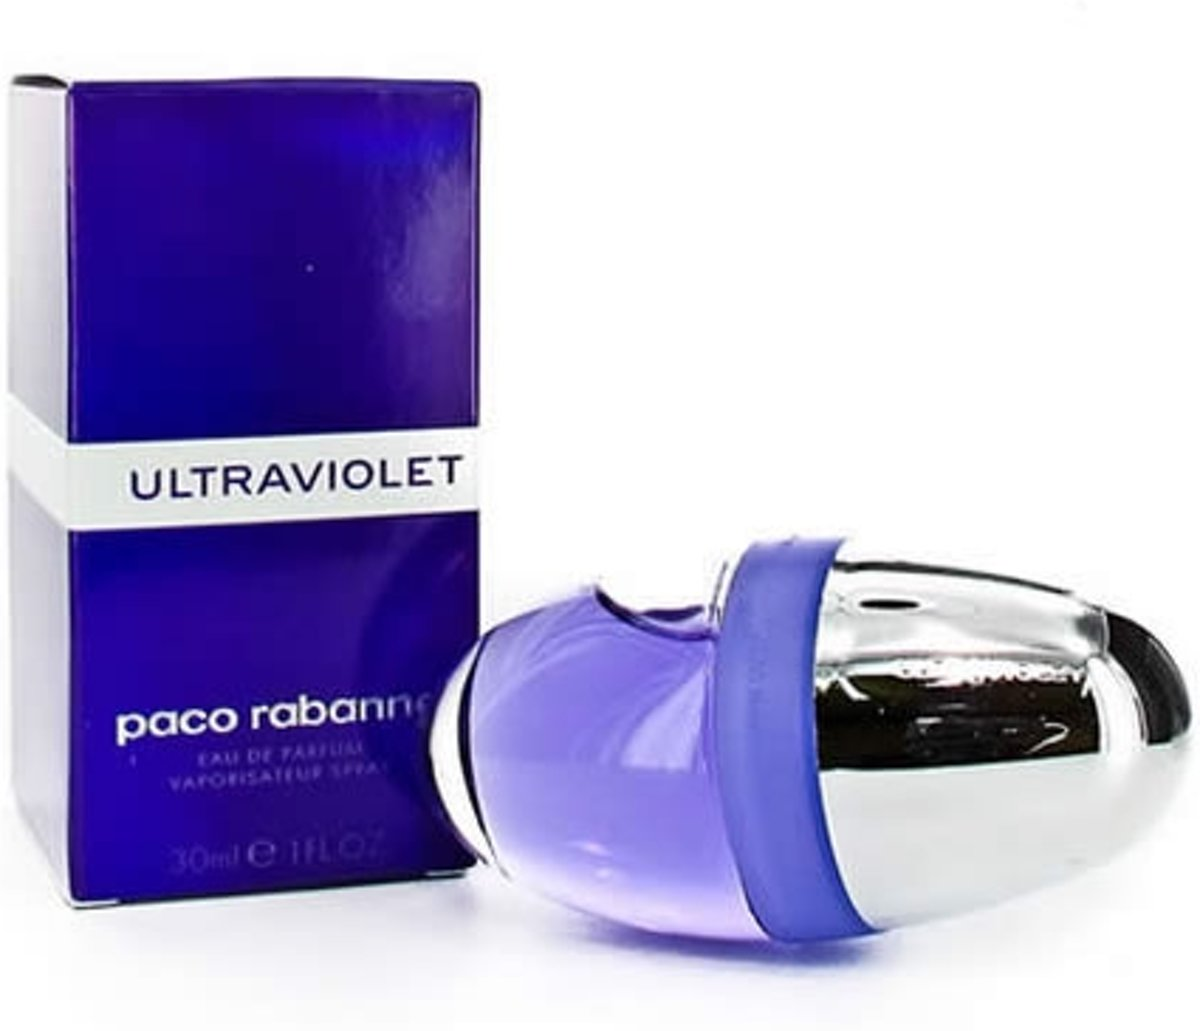 MULTI BUNDEL 5 stuks Paco Rabanne Ultraviolet Eau De Perfume Spray 30ml